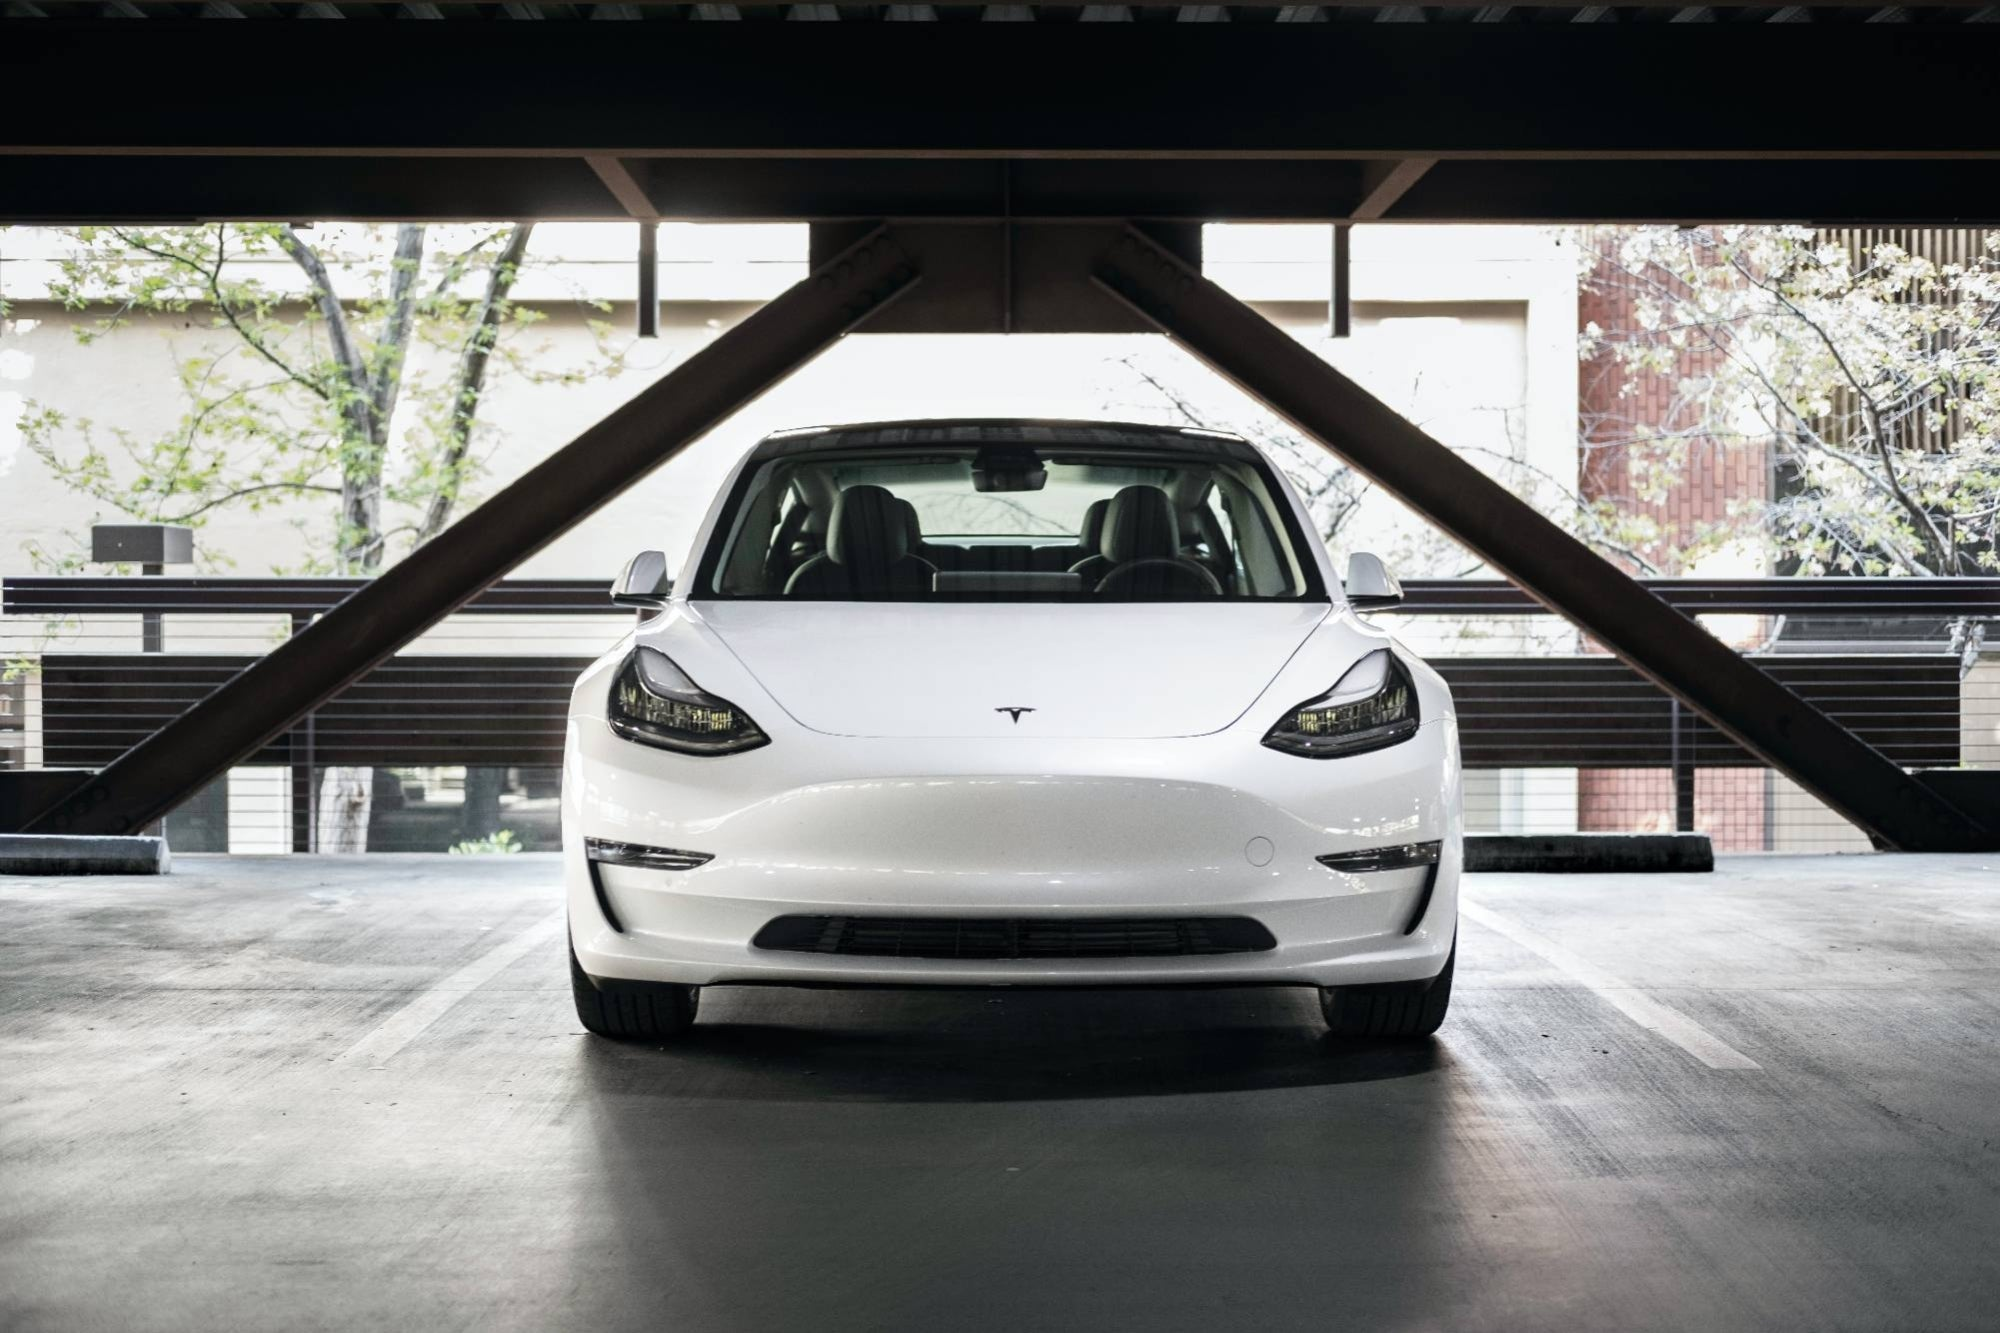 The new Tesla would arrive in 2023 with a price of 25 thousand dollars and without pedals or steering wheel